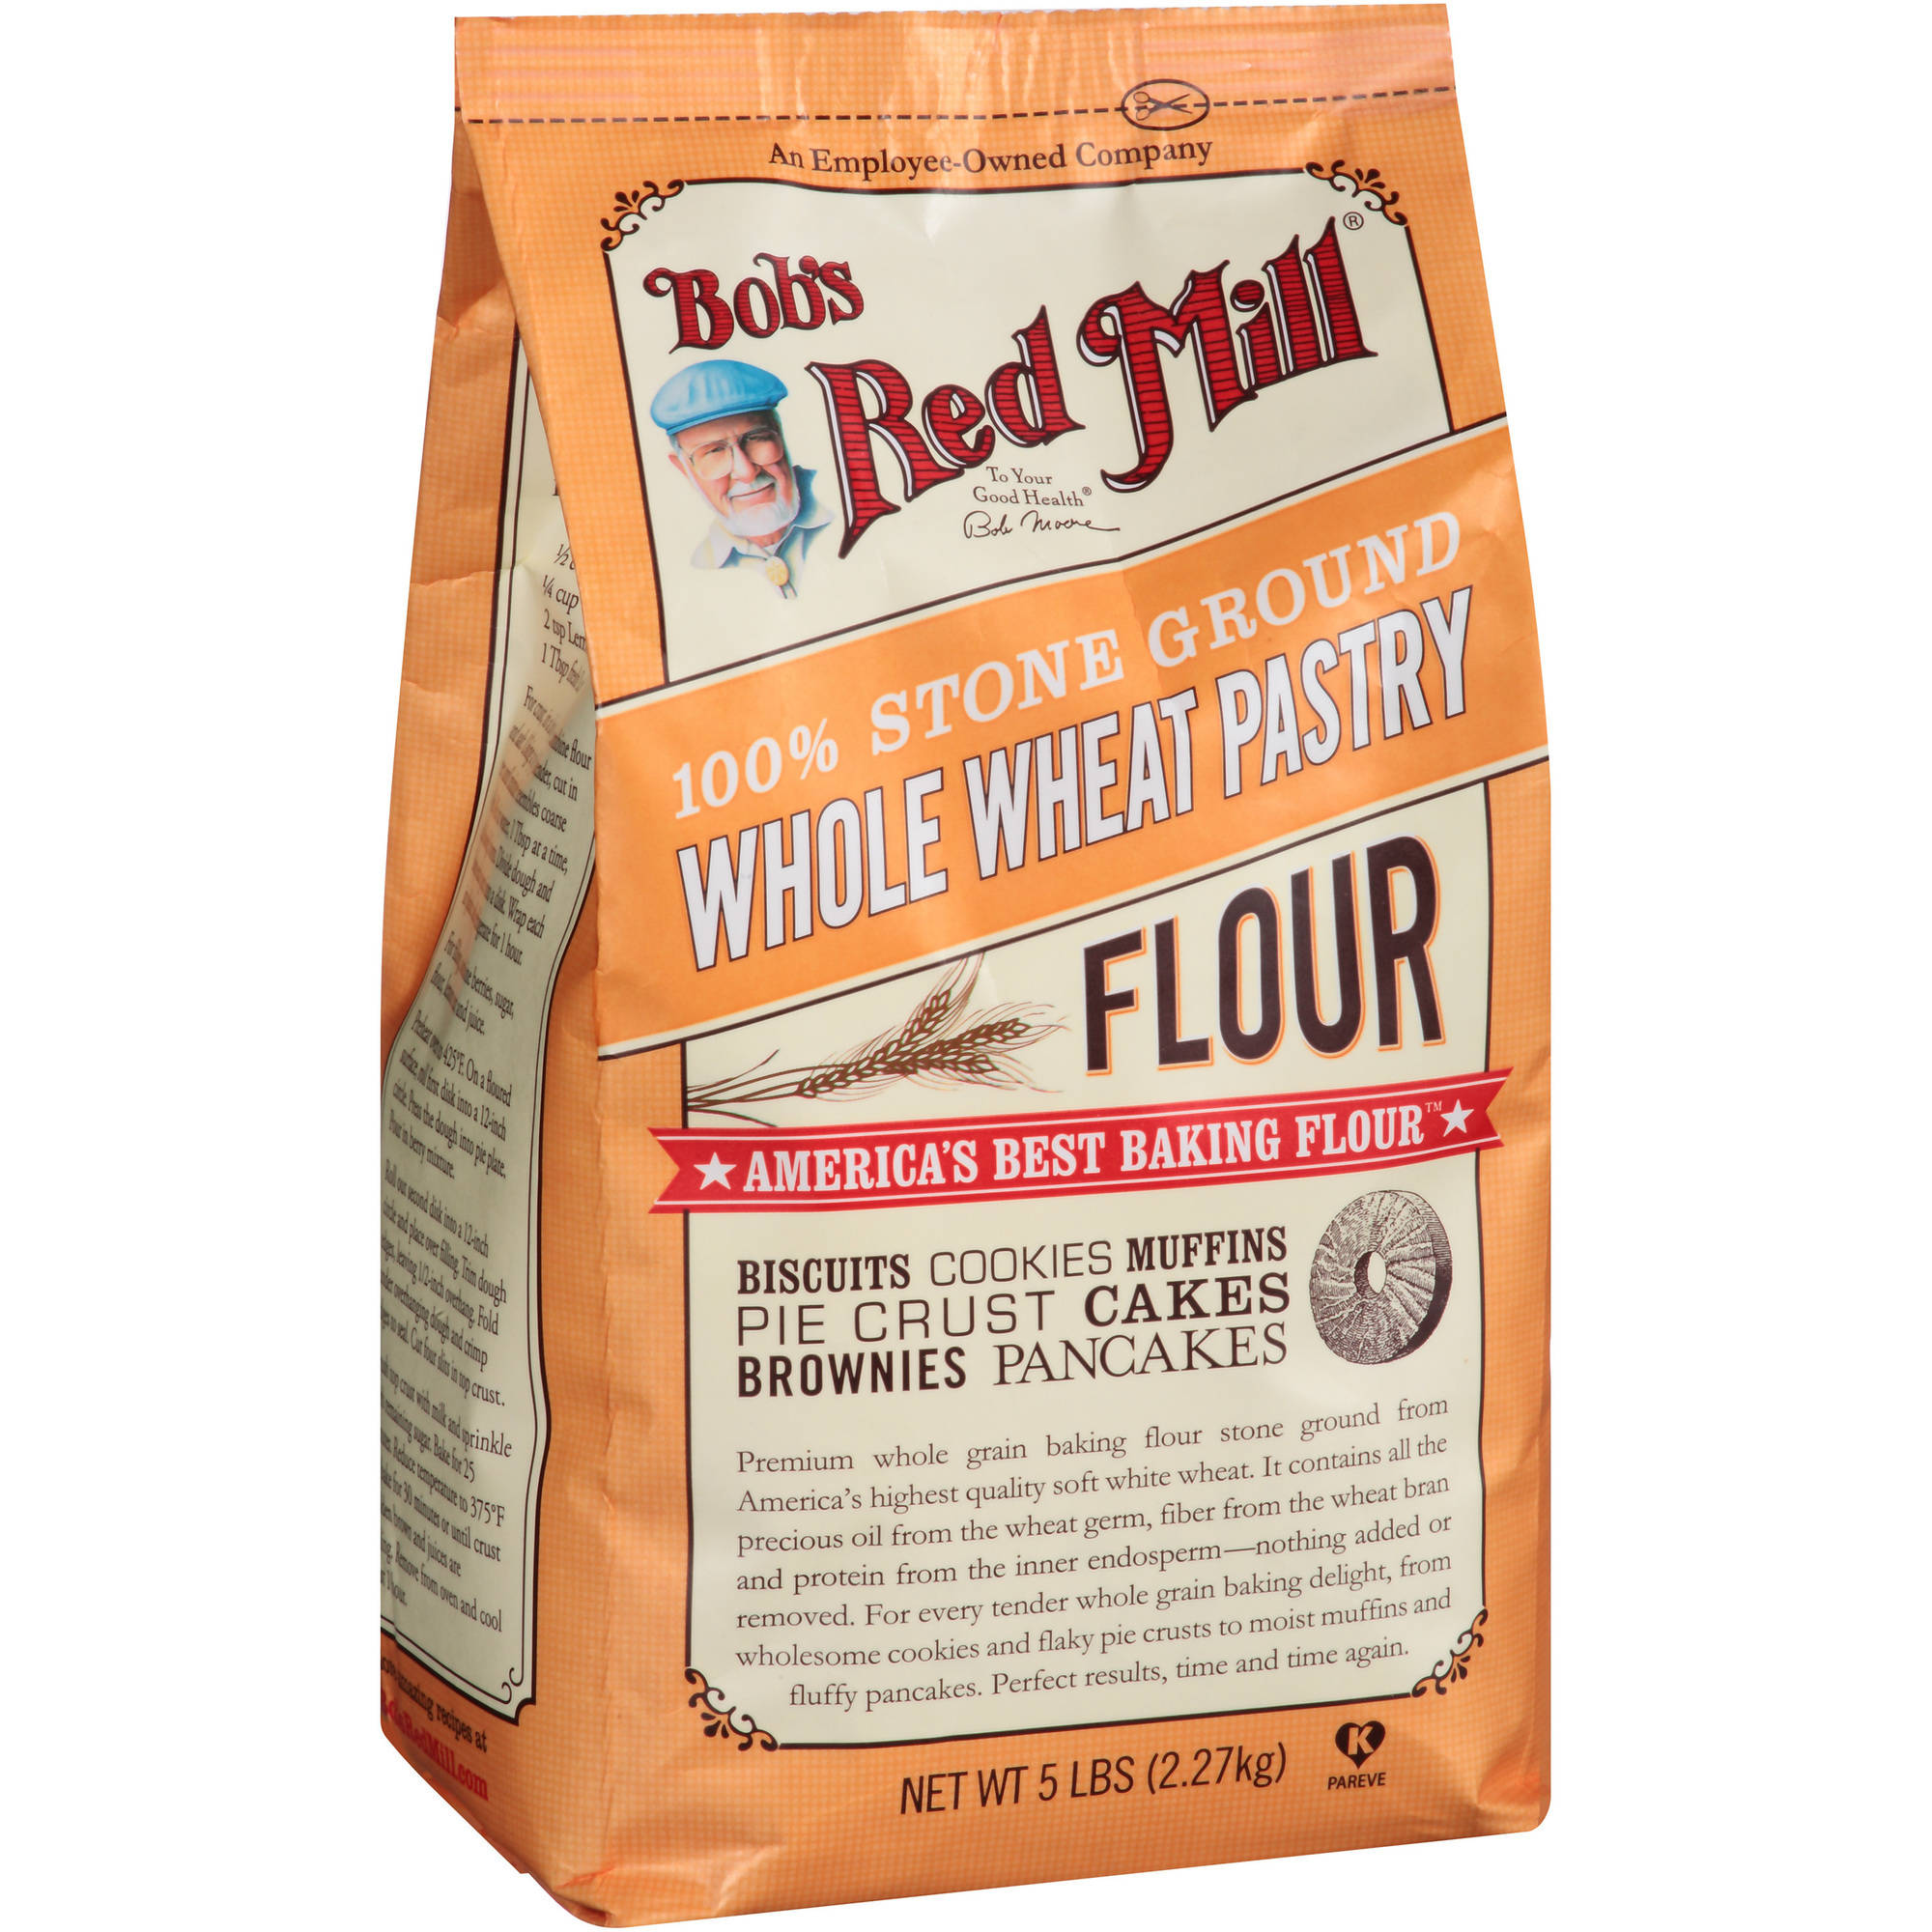 Bob's Red Mill 100% Stone Ground Whole Wheat Pastry Flour, 80 oz